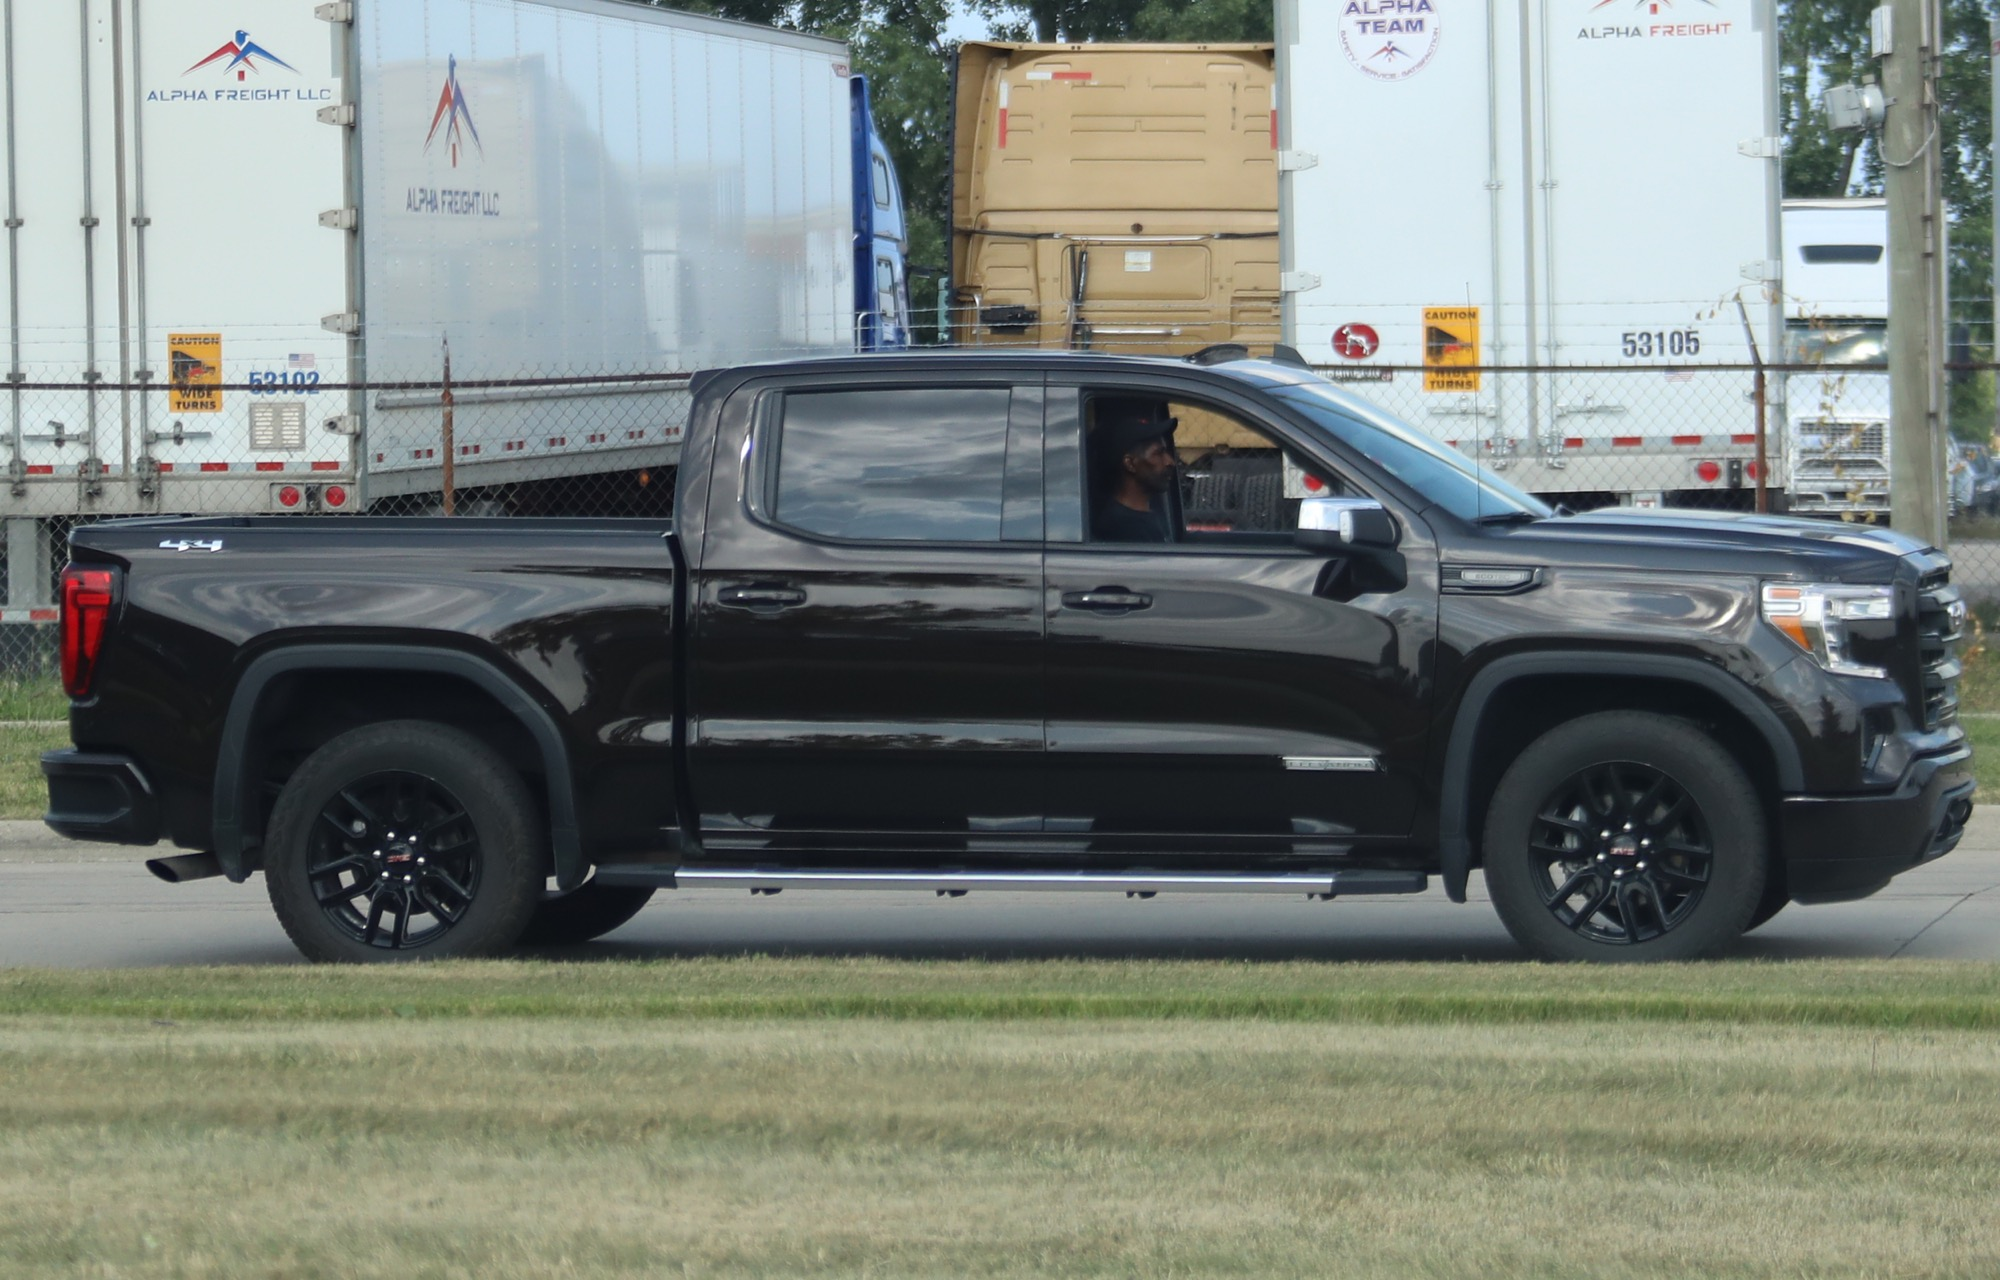 2019 Gmc Sierra 1500 Elevation Edition Gmc Cars Review